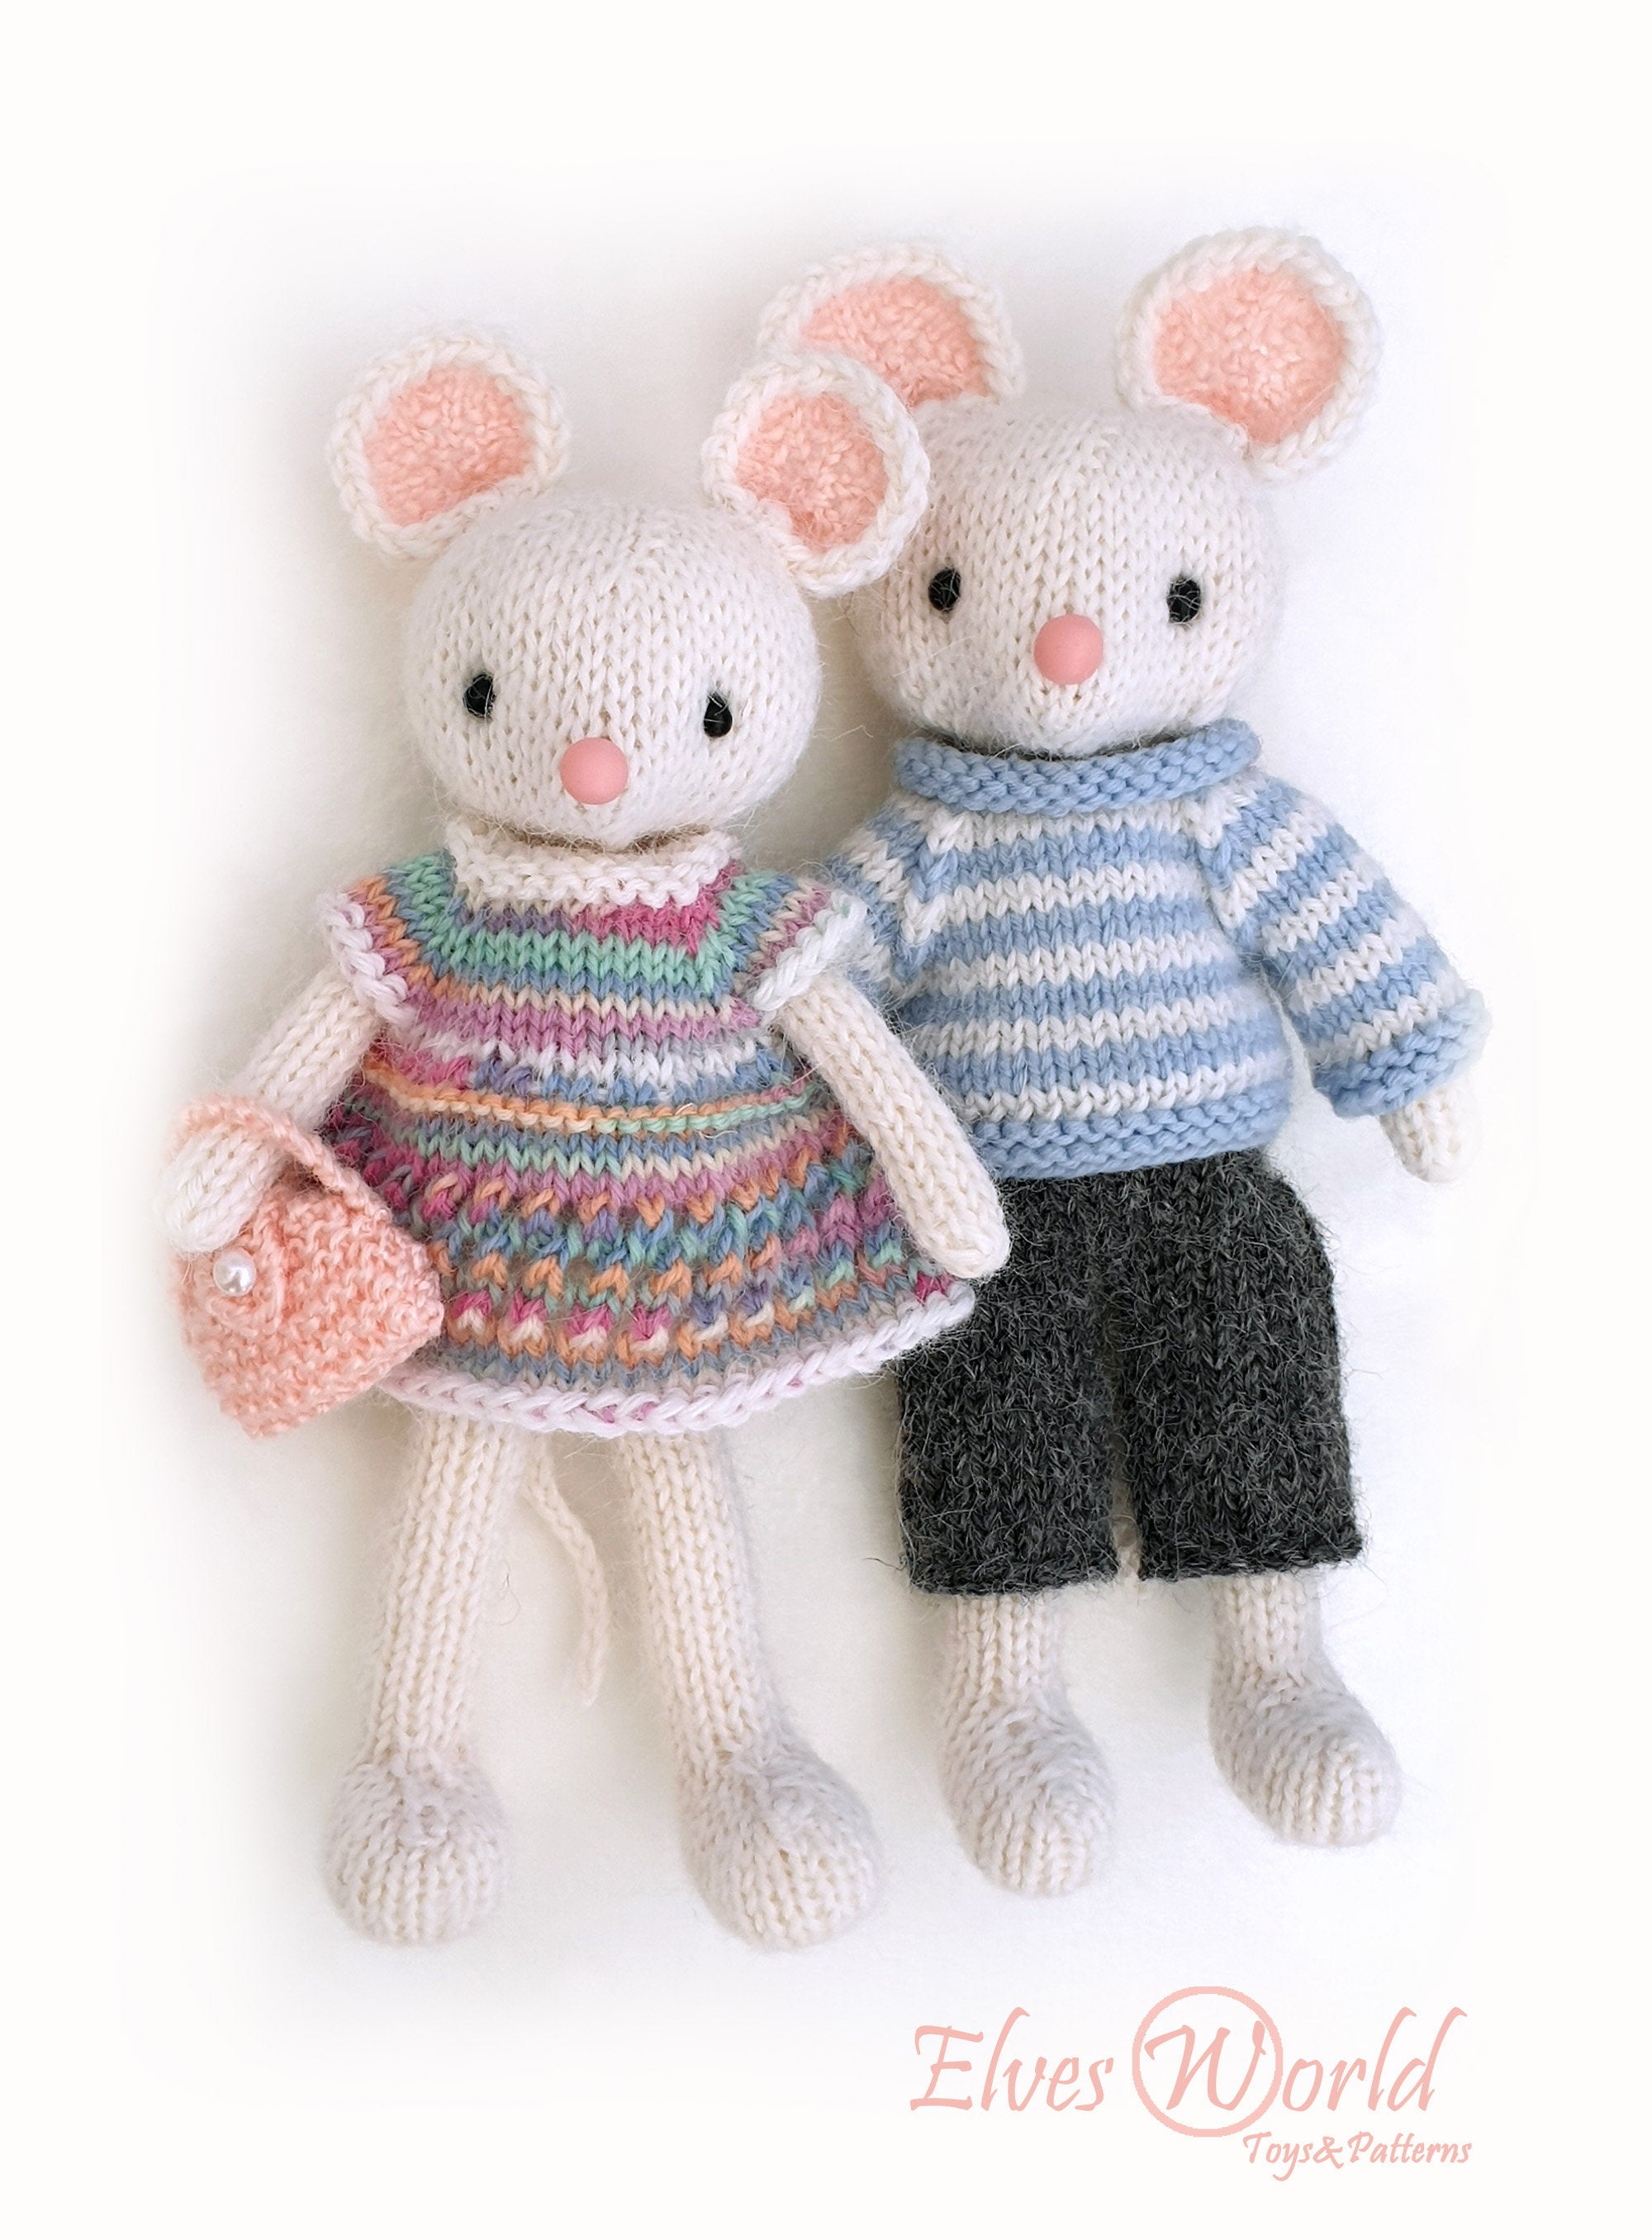 Knitting Patterns For Baby Toys Knitting Patterns Toy Mice Family Knitted Animal Pattern Knit Toy Stuffed Toy Making Diy Toy Pattern Ba Toy Amigurumi Two Pattern Deal Pdf